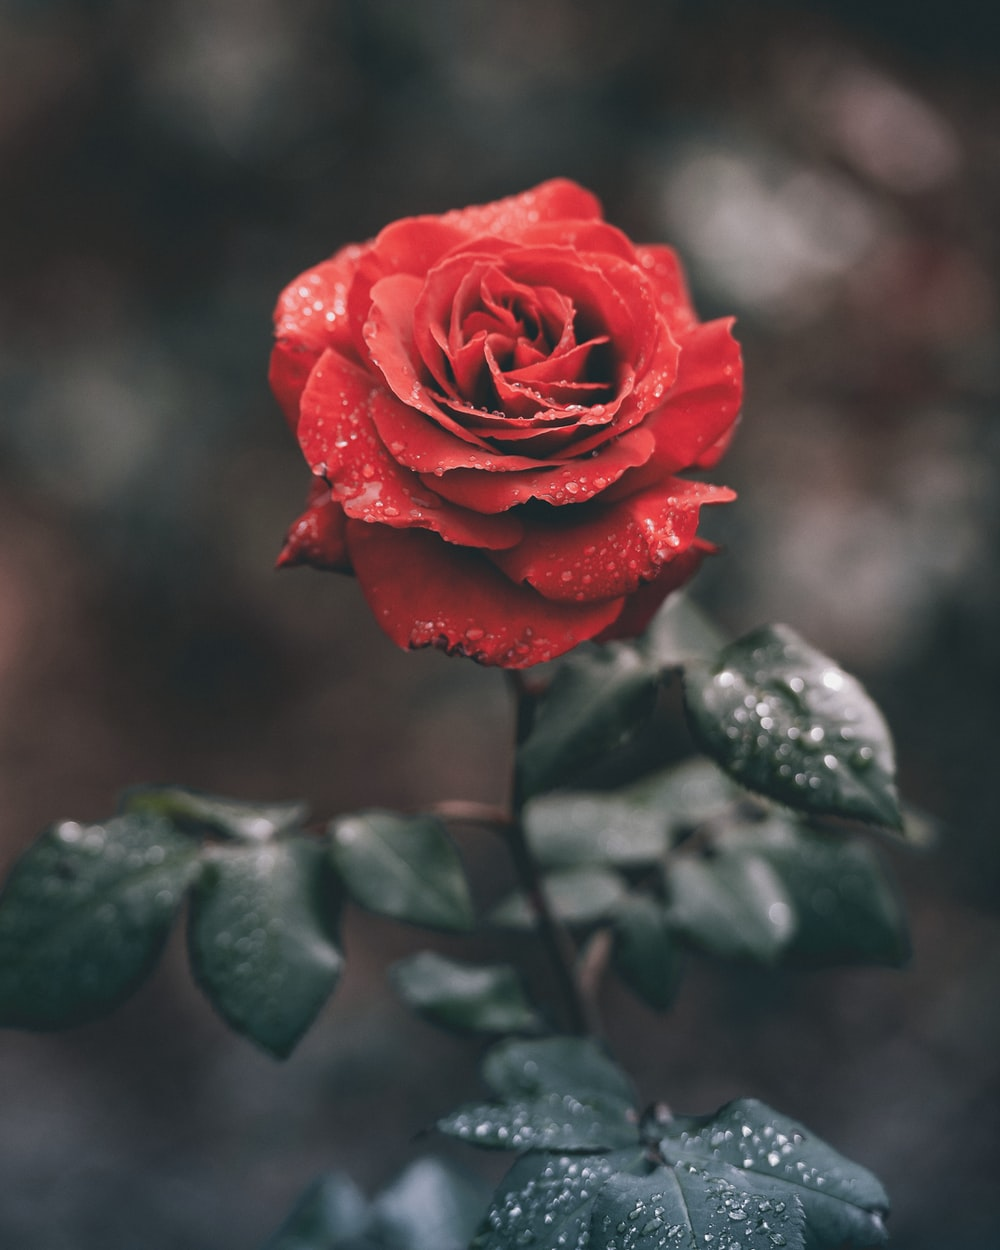 Rose Pictures Hd Download Free Images Stock Photos On Unsplash